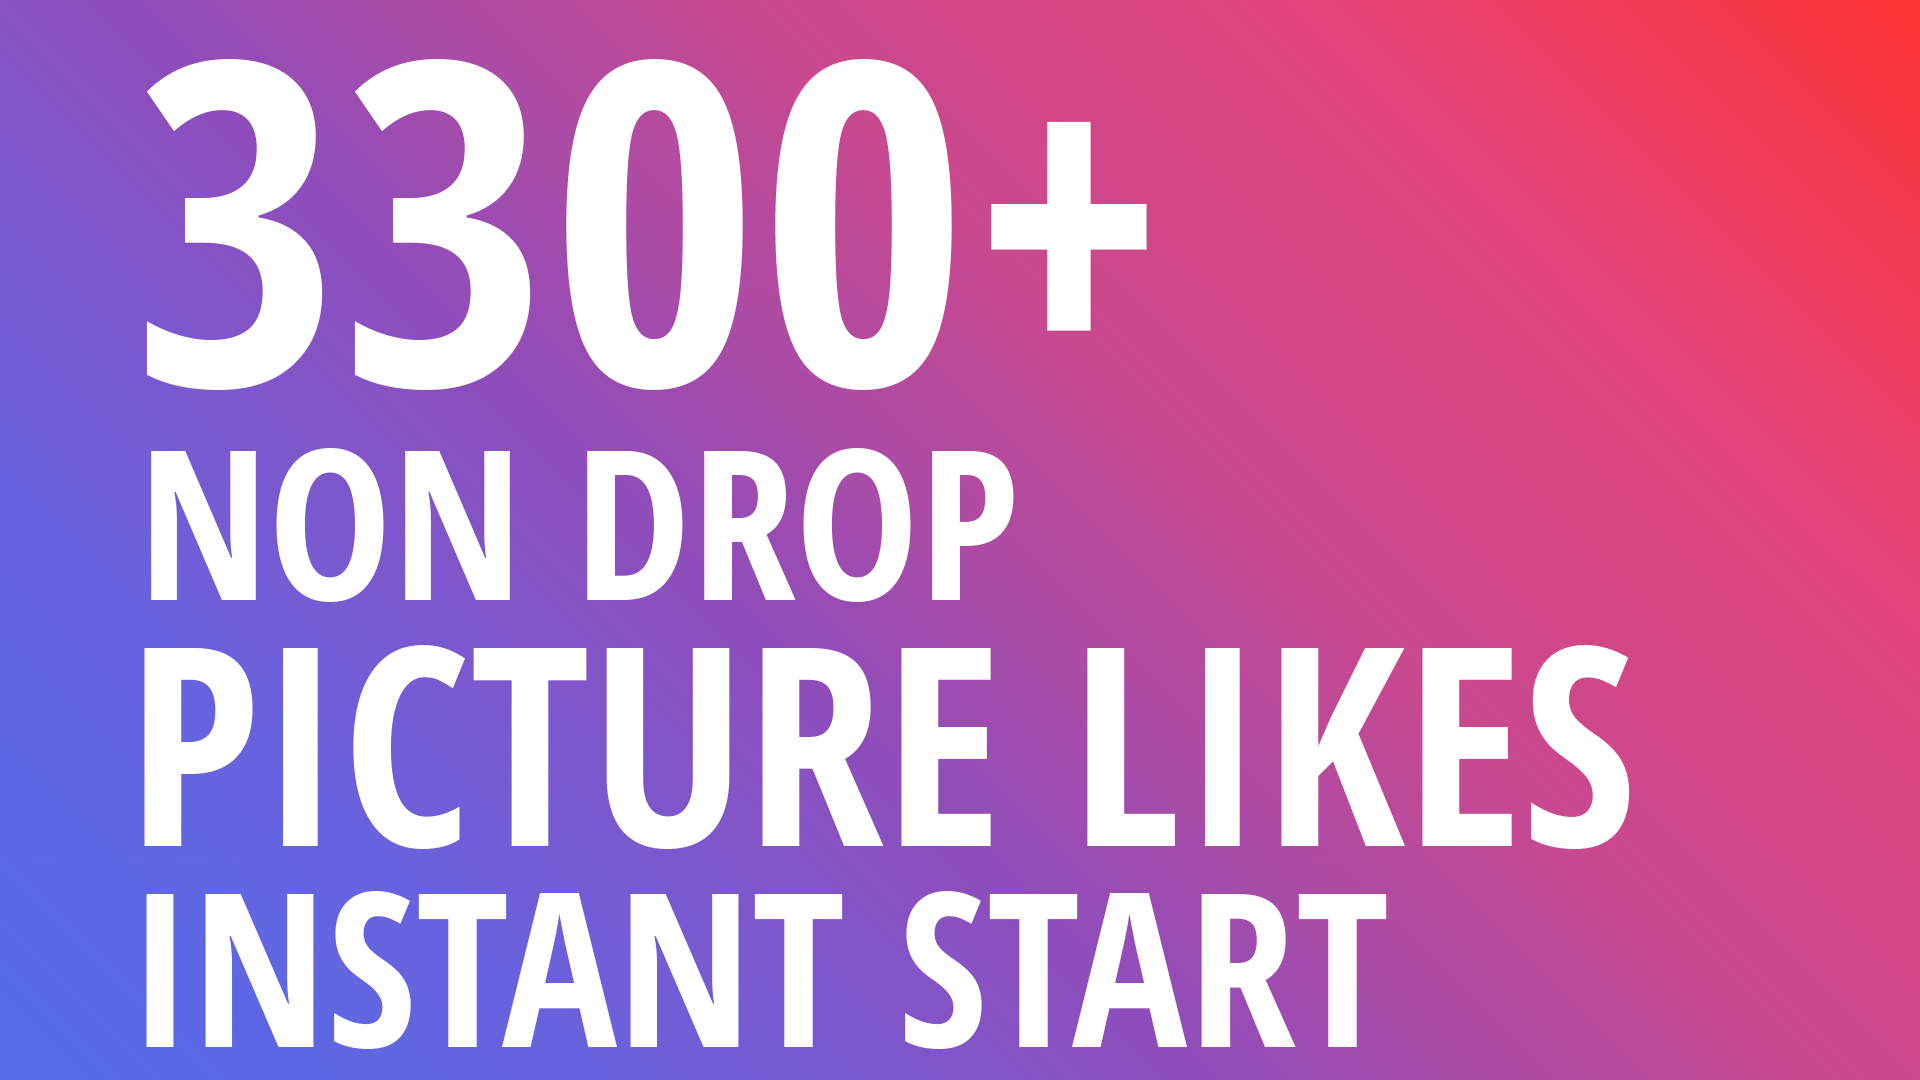 Instant 3300+ Picture OR Video Promotion with Organic Method